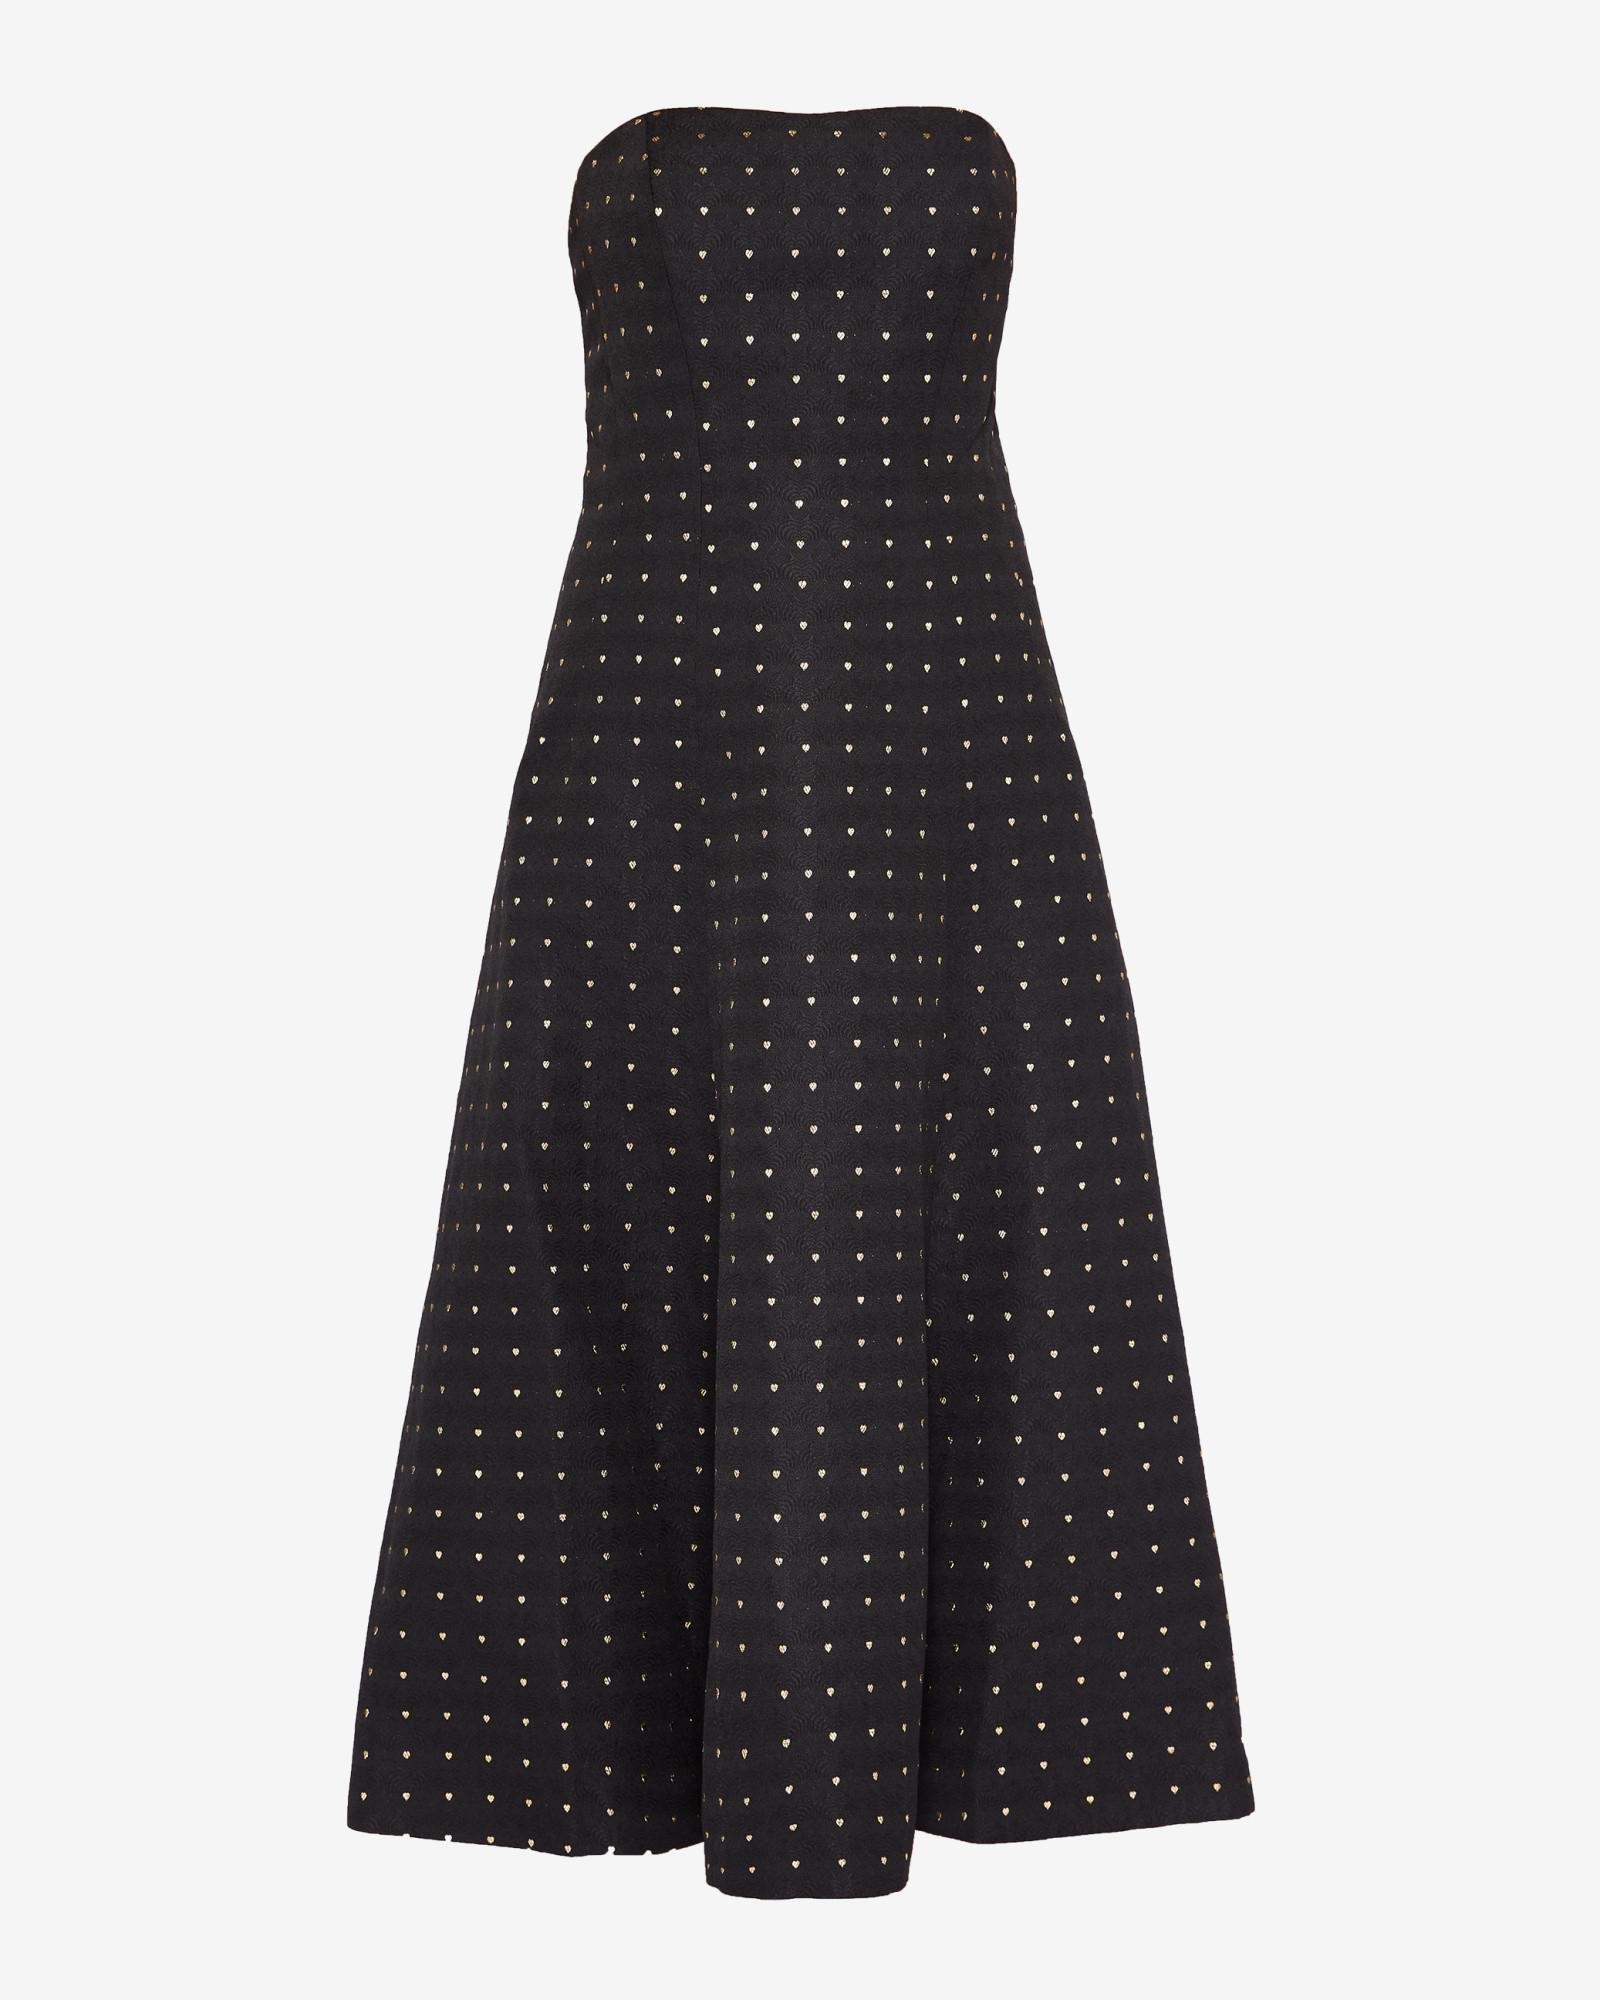 bada4563329c Ted Baker Heart Print Strapless Midi Dress in Black - Lyst